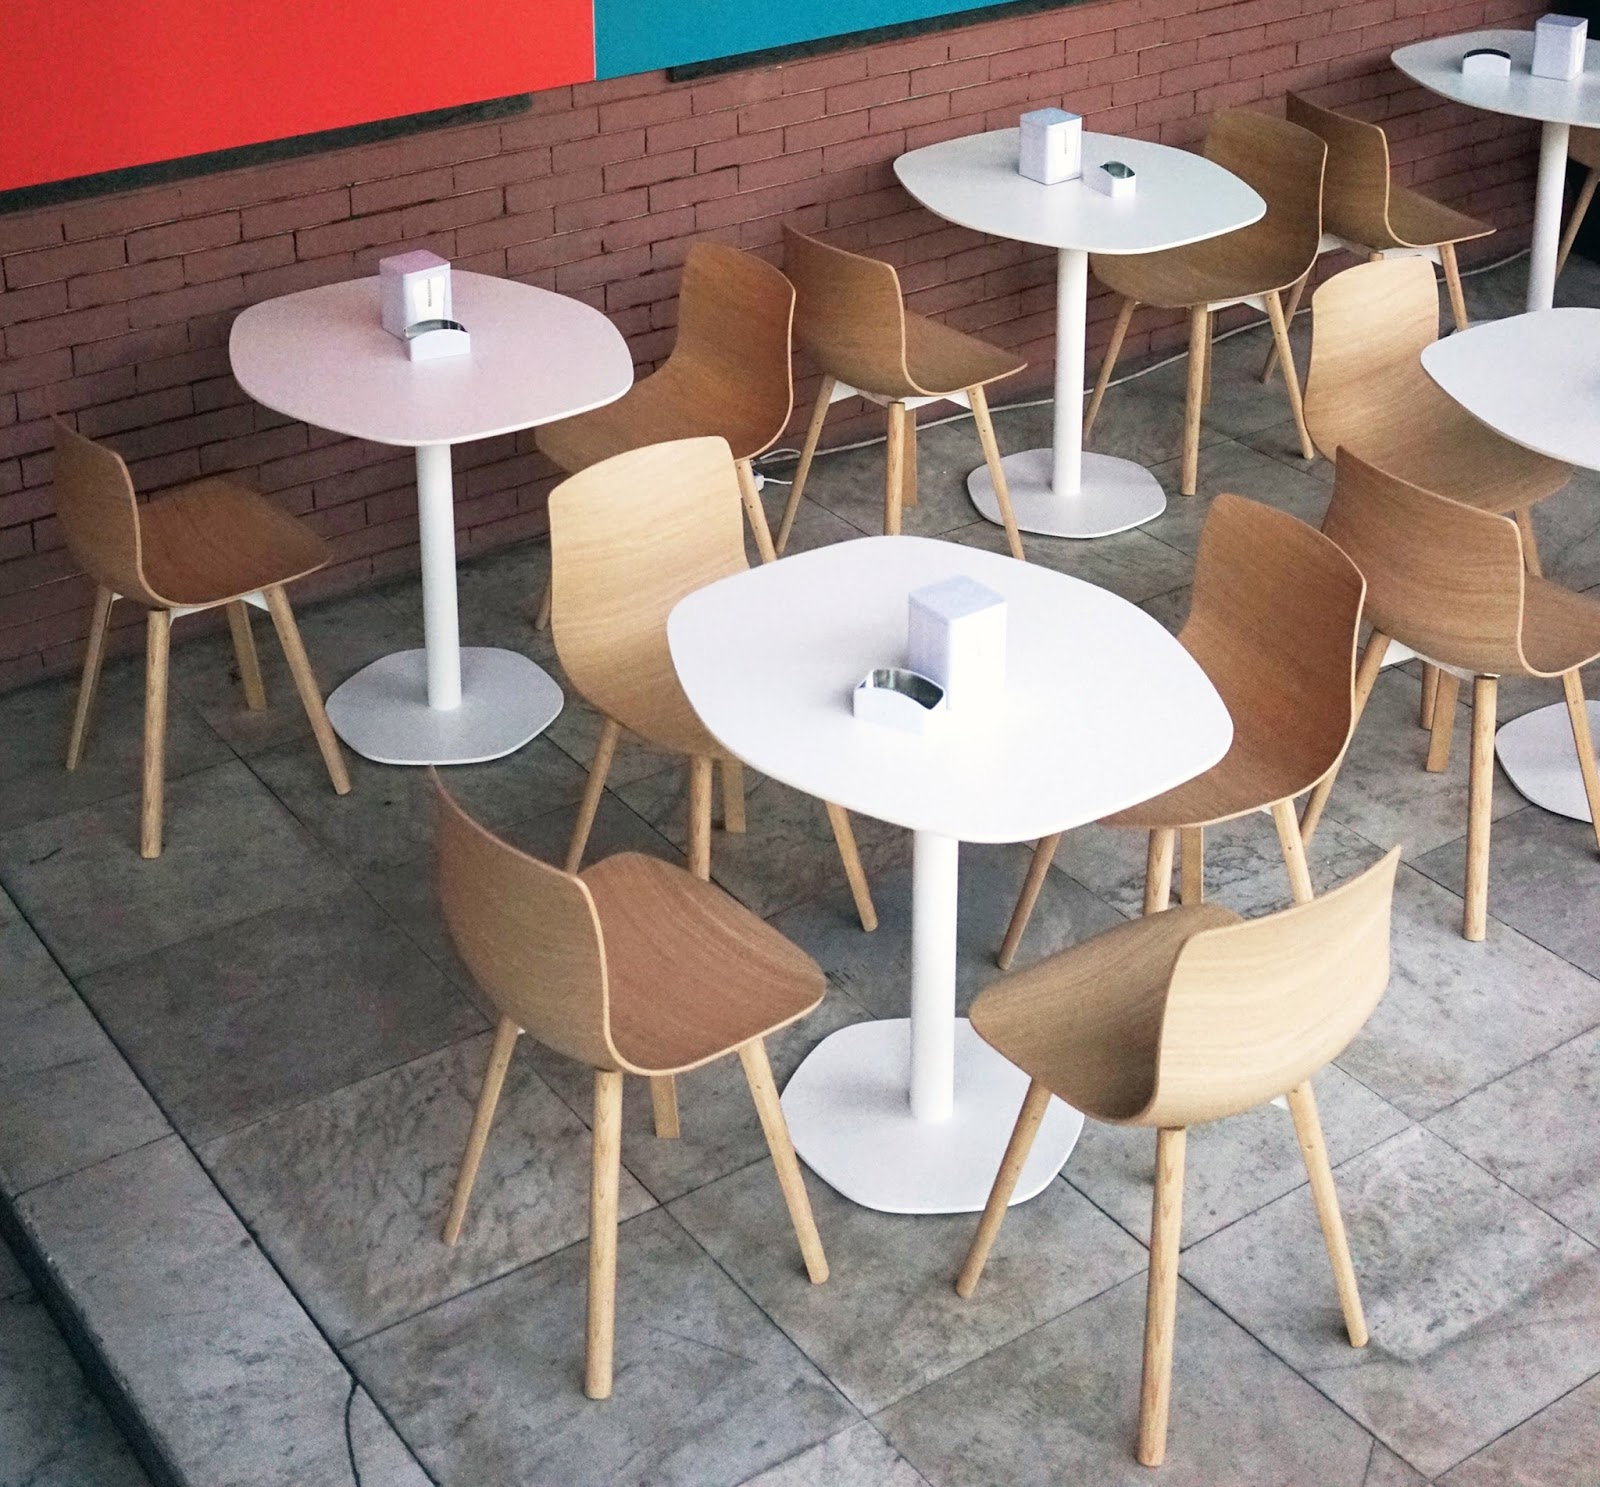 average cafe table size bistro cafe table set cafe setting table and chairs & TOPS) Cafe Table Chairs Design Size   runnersrd.info